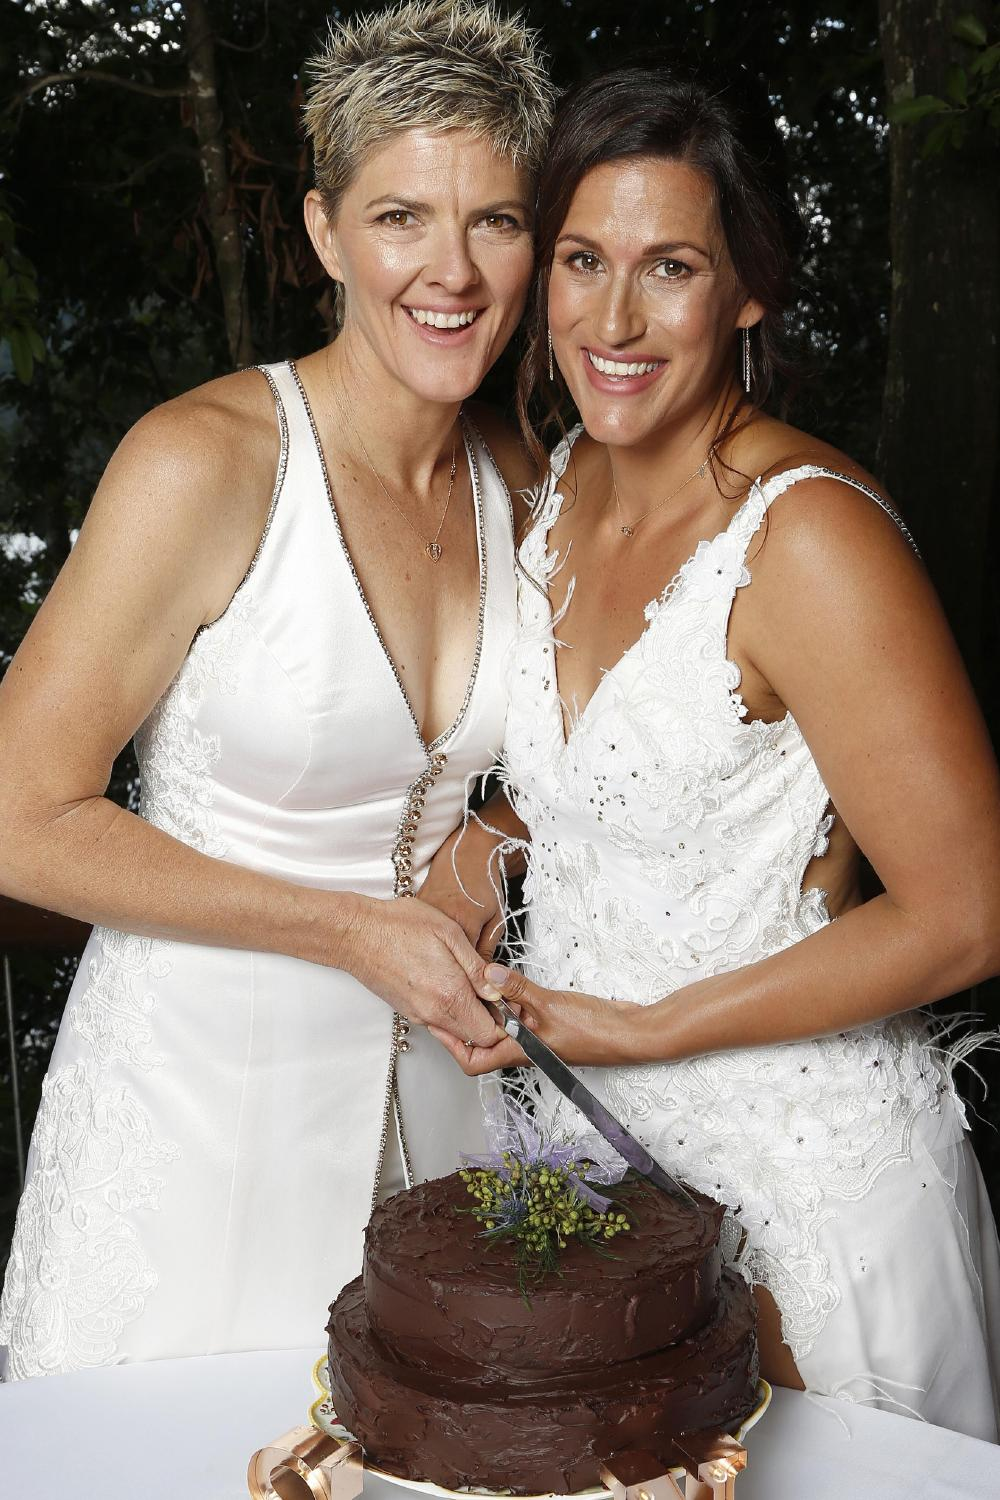 Five-time Olympian marries her partner Sarah Maxwell at Secrets at Montville with their chocolate ganache wedding cake made by Krista Pappas